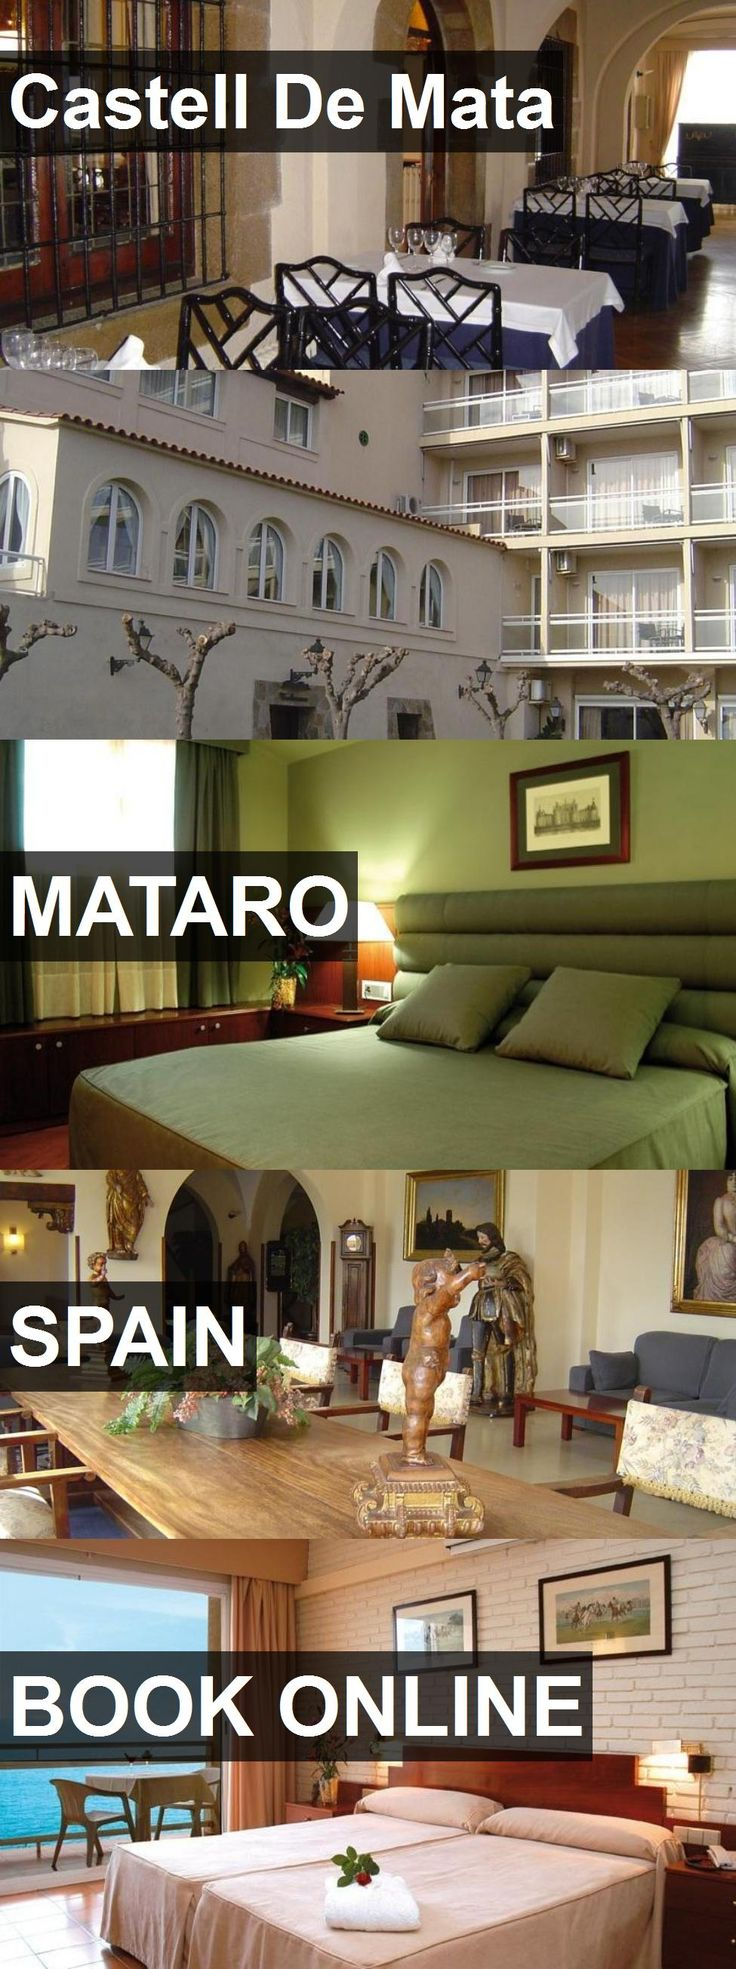 Hotel Castell De Mata in Mataro, Spain. For more information, photos, reviews and best prices please follow the link. #Spain #Mataro #travel #vacation #hotel